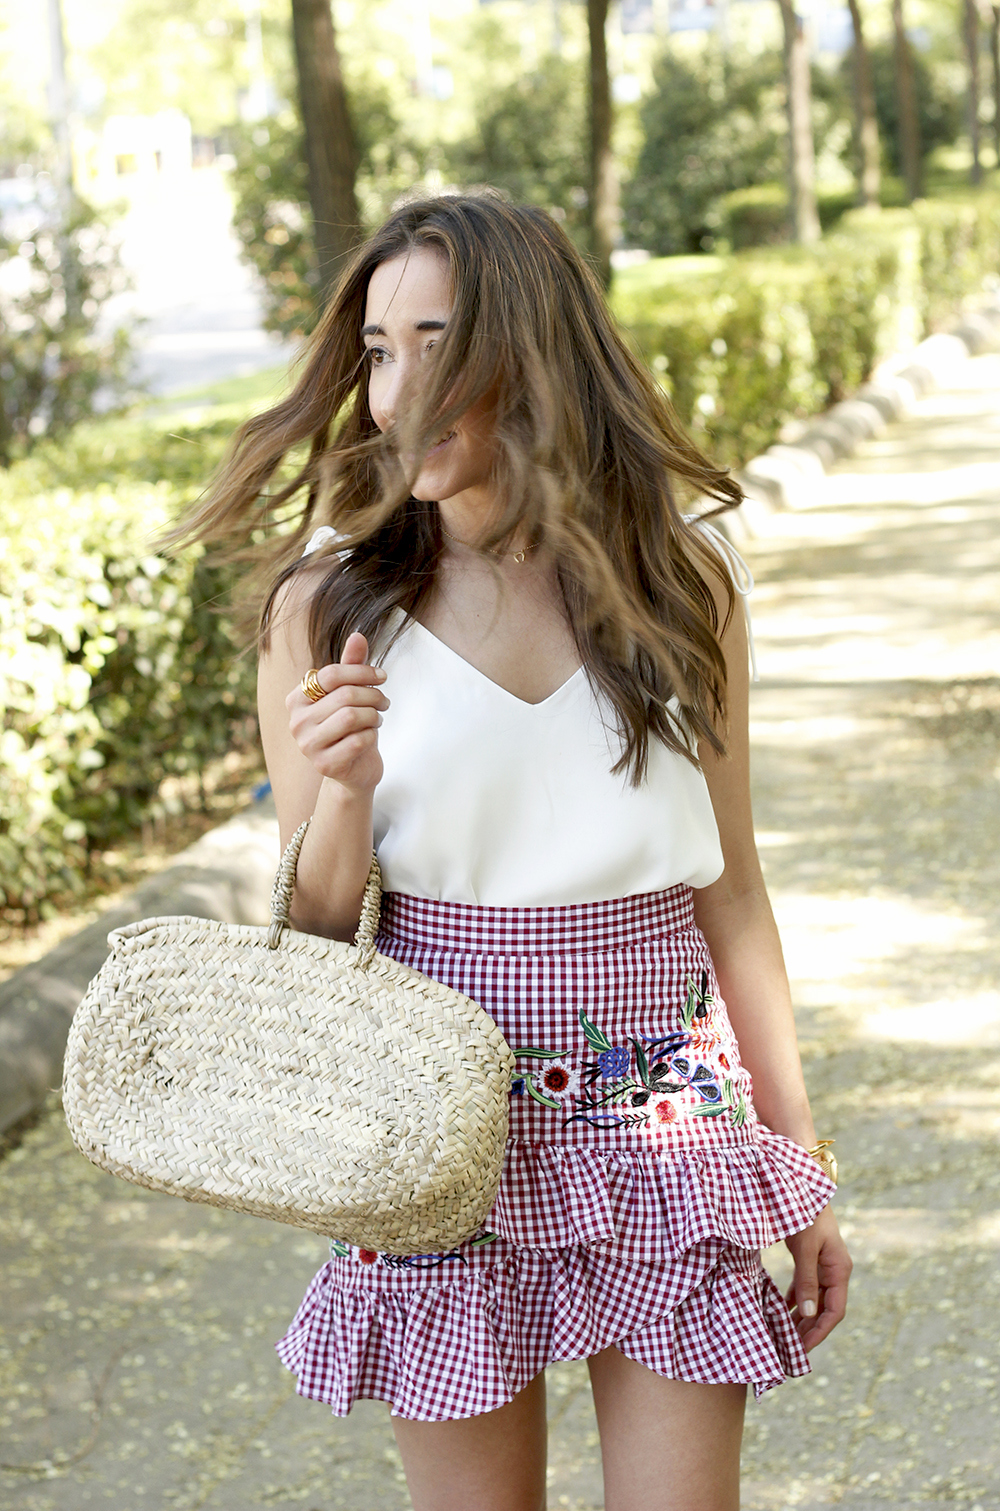 Vichy skirt with embroidered flowers rafia bag heels summer outfit style06